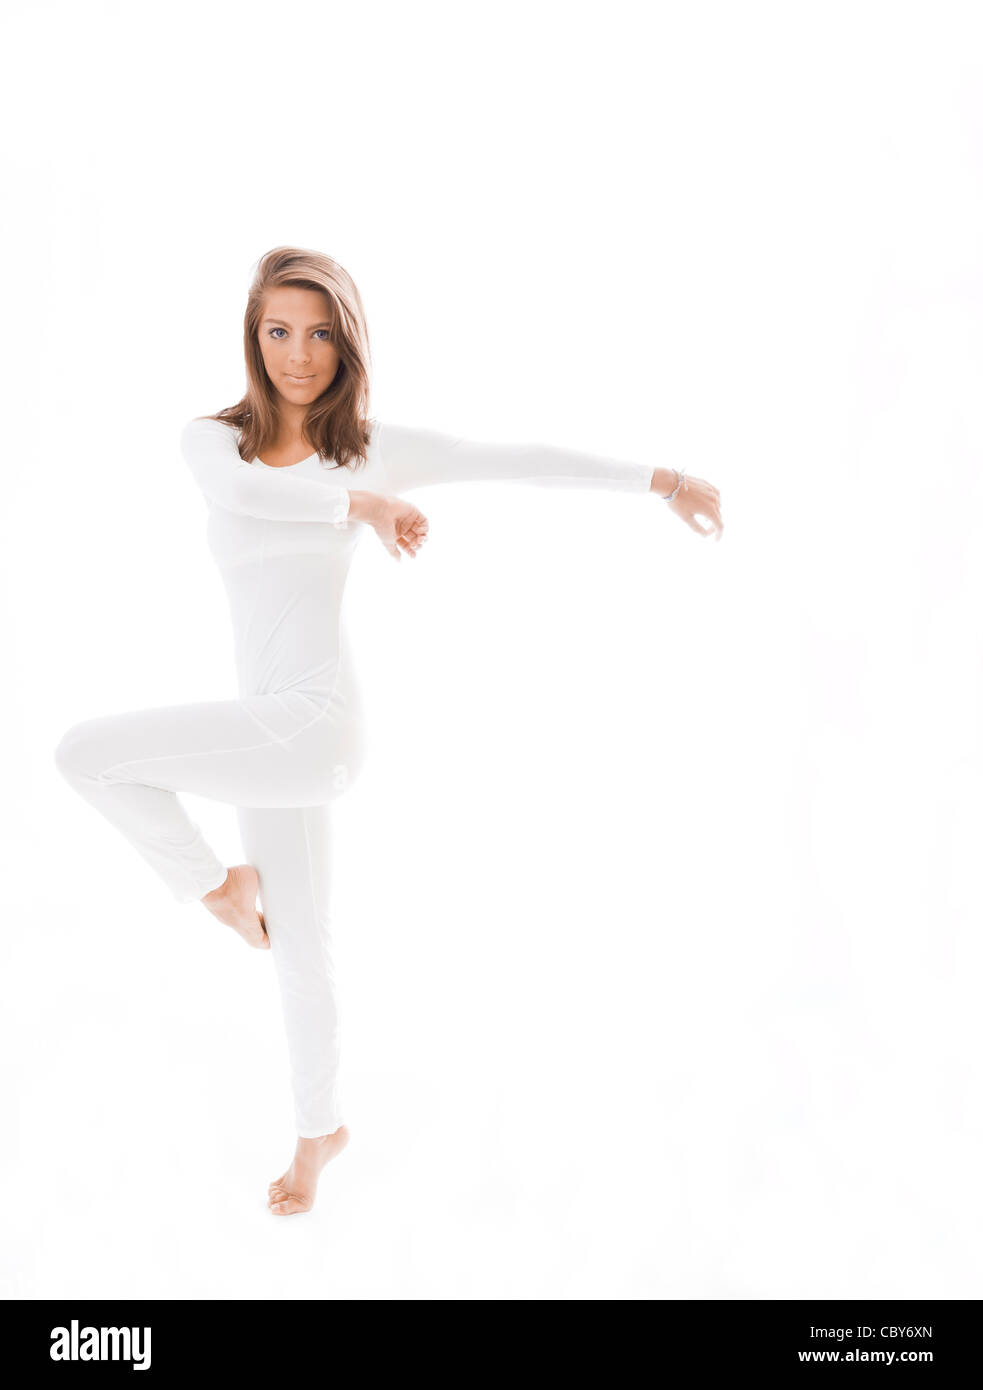 Young dancer in white against a white background - Stock Image